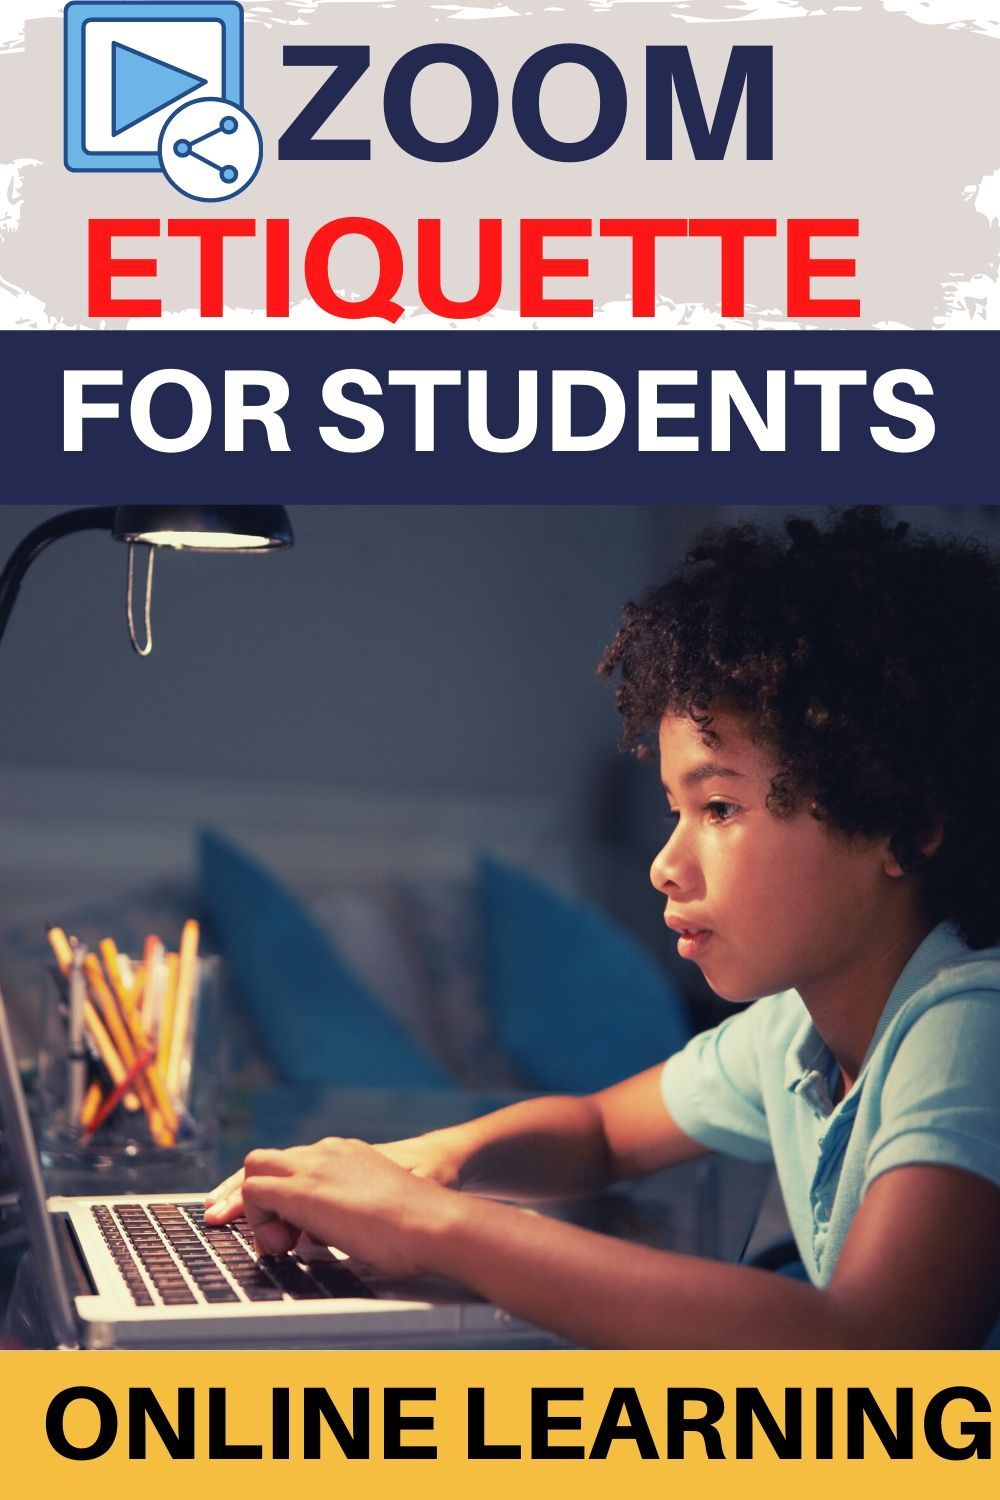 Zoom Tips & Etiquette in 2020 Student teacher, Online